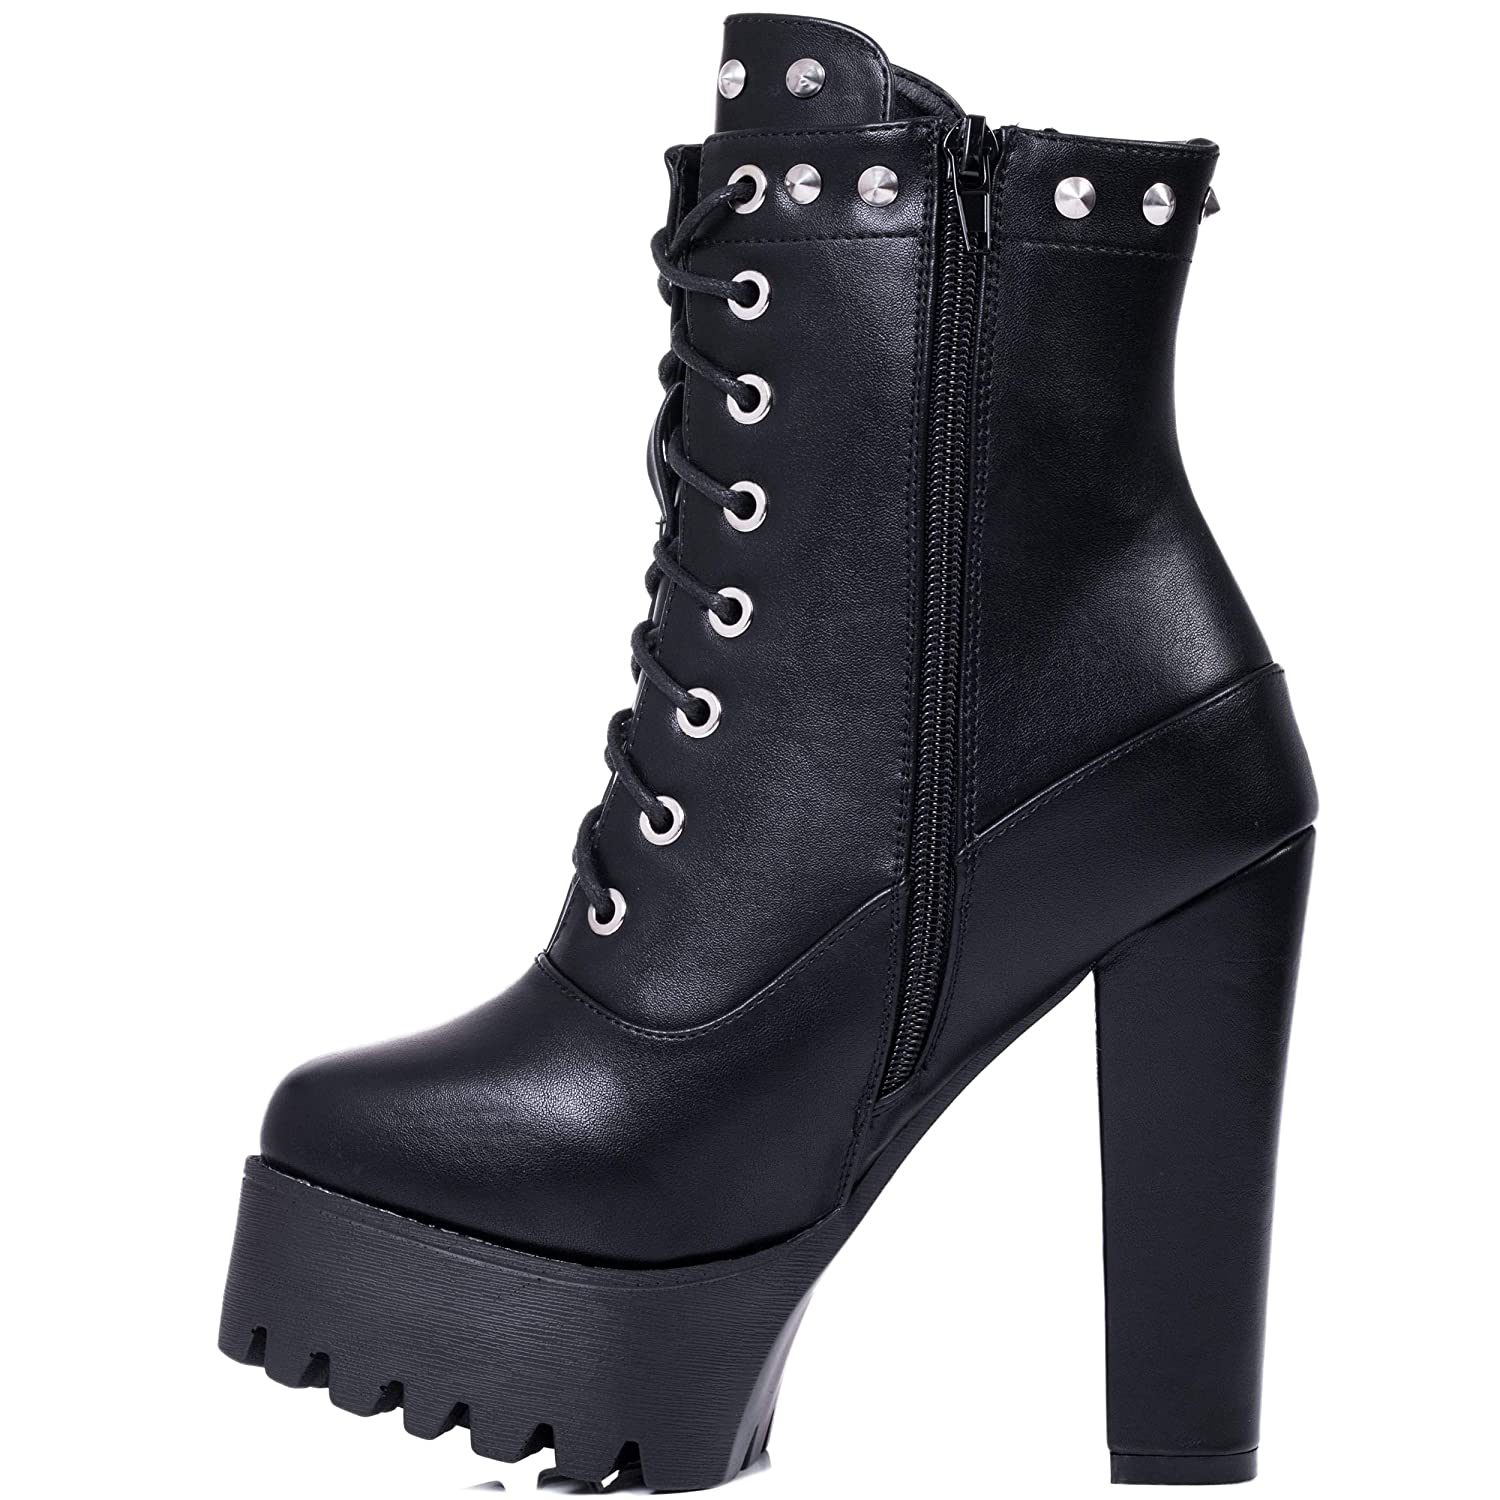 1a6a4234d Spylovebuy GOLLIE Women's Chunky Platform Block Heel Ankle Boots Shoes:  Amazon.co.uk: Shoes & Bags